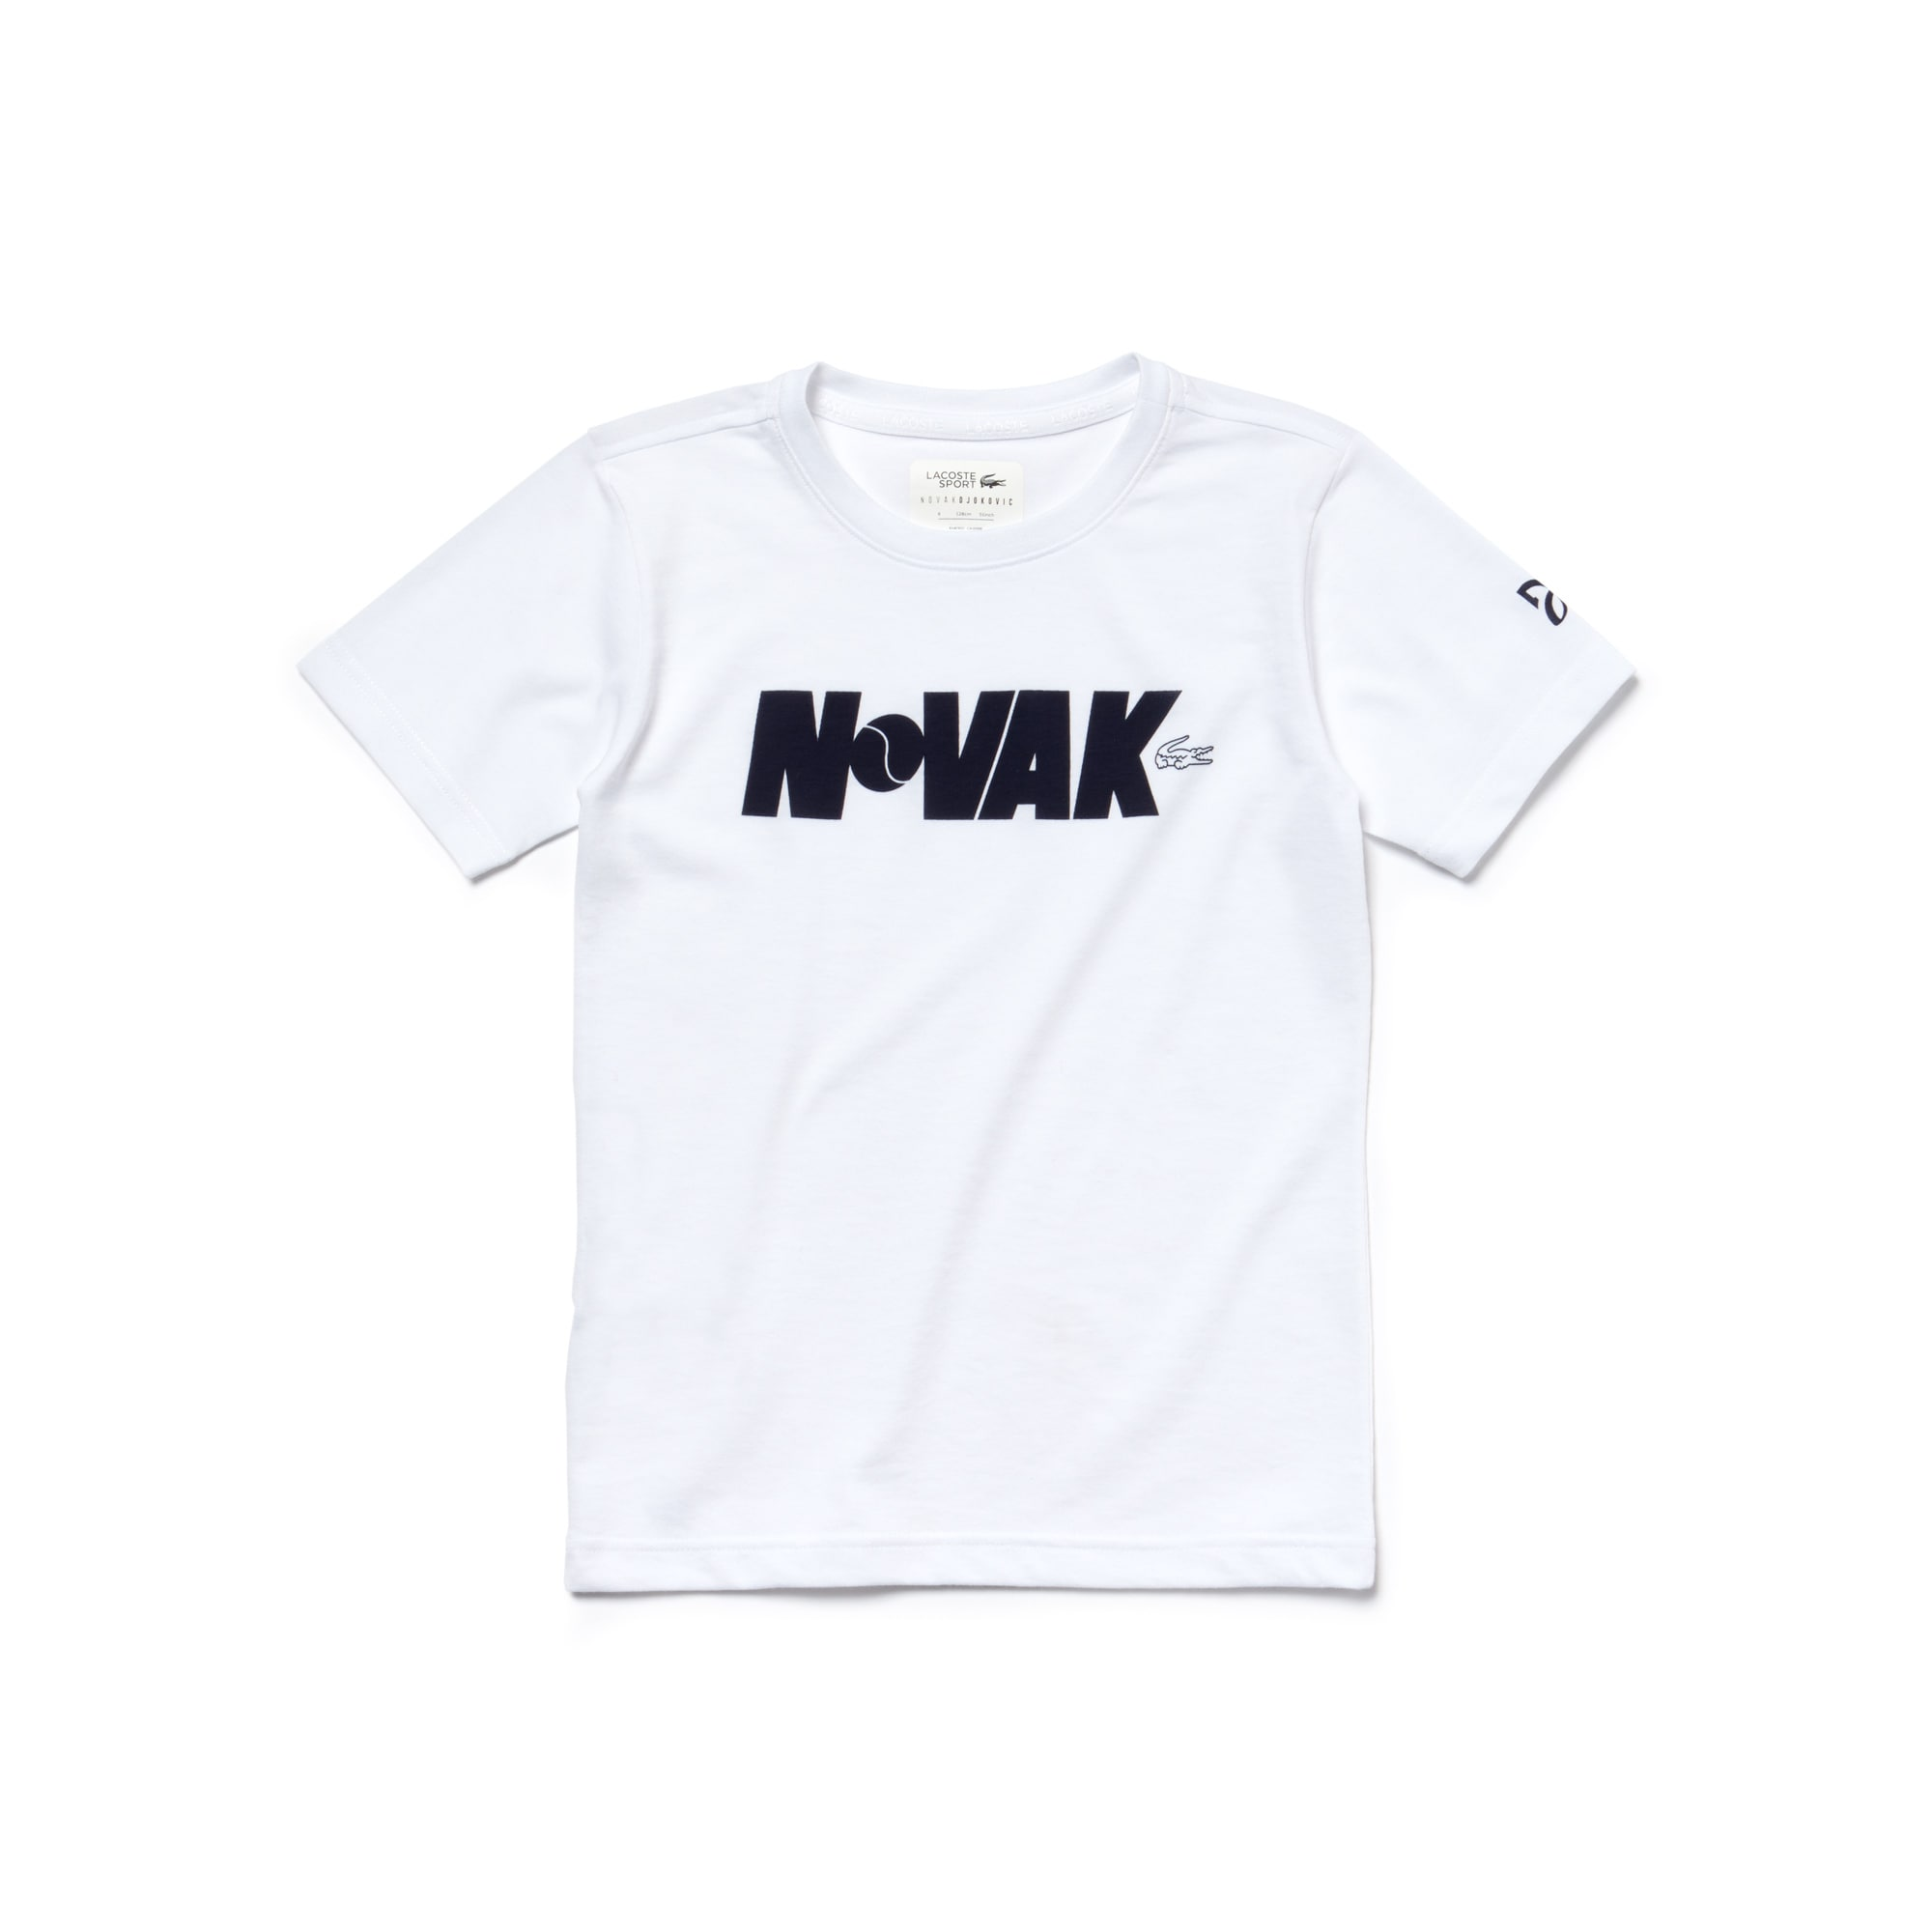 Boys' SPORT Technical T-Shirt - Novak Djokovic Supporter Collection